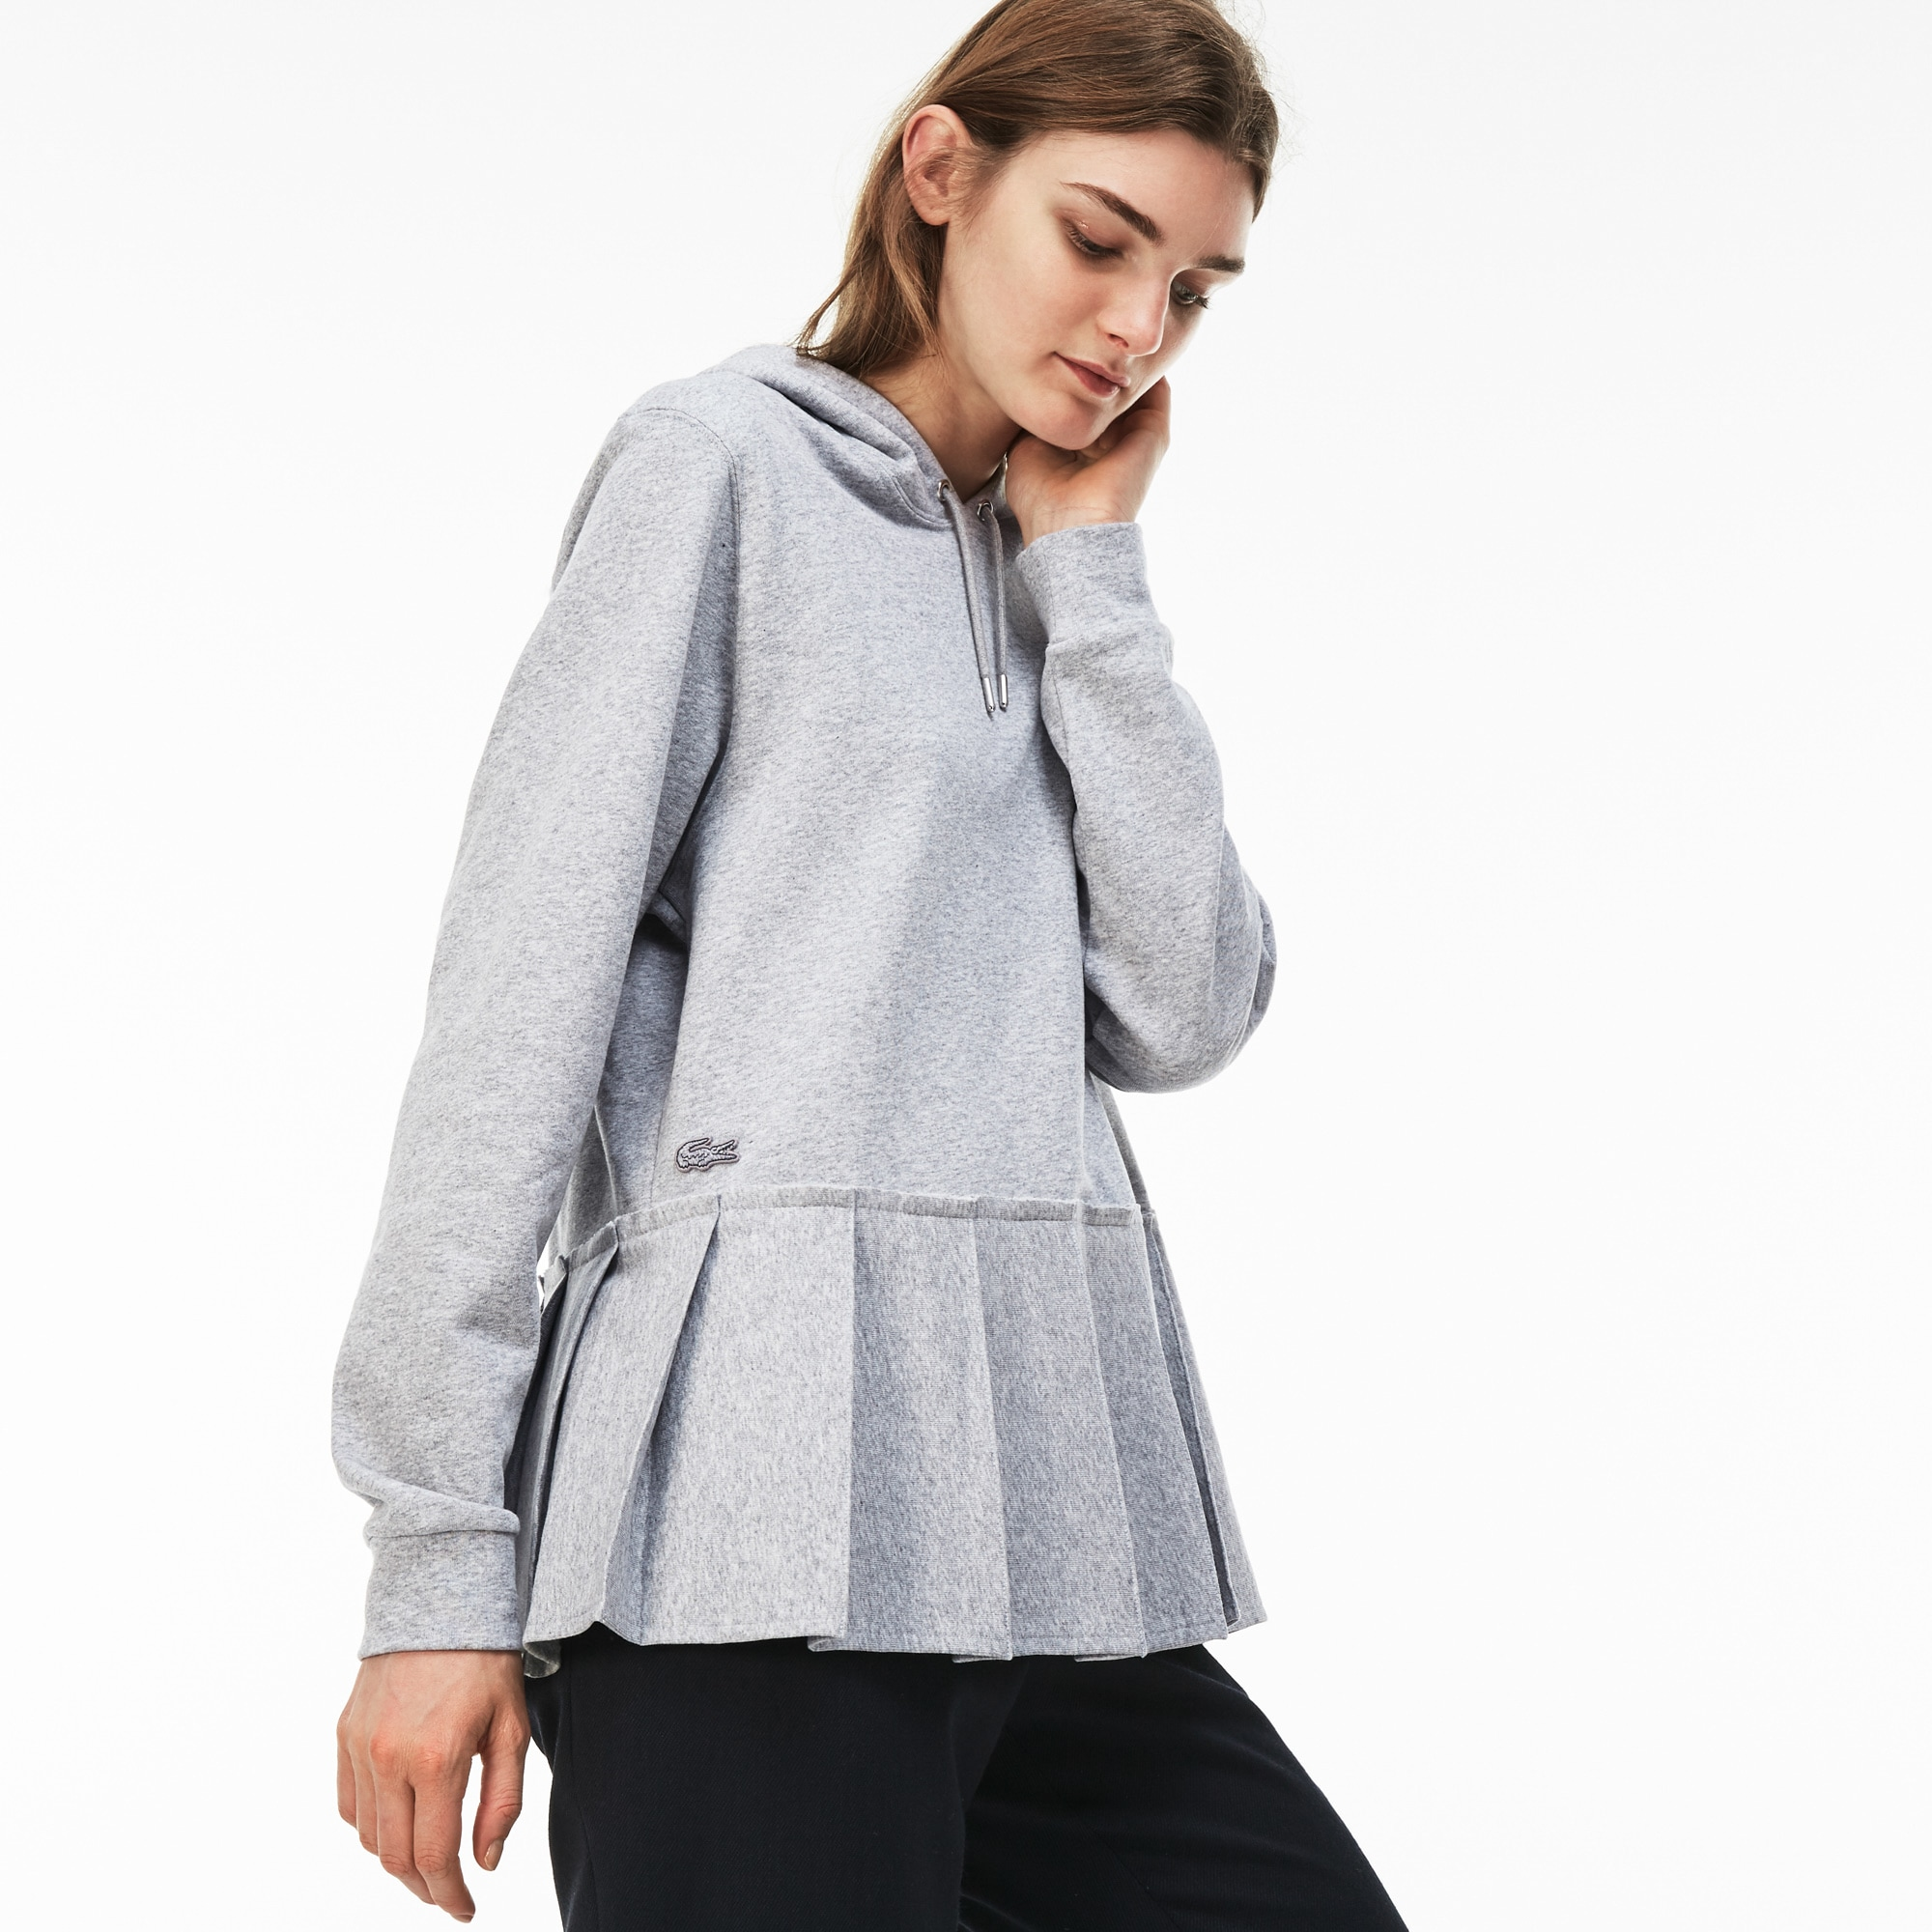 Women's Hooded Pleated Fleece Sweatshirt